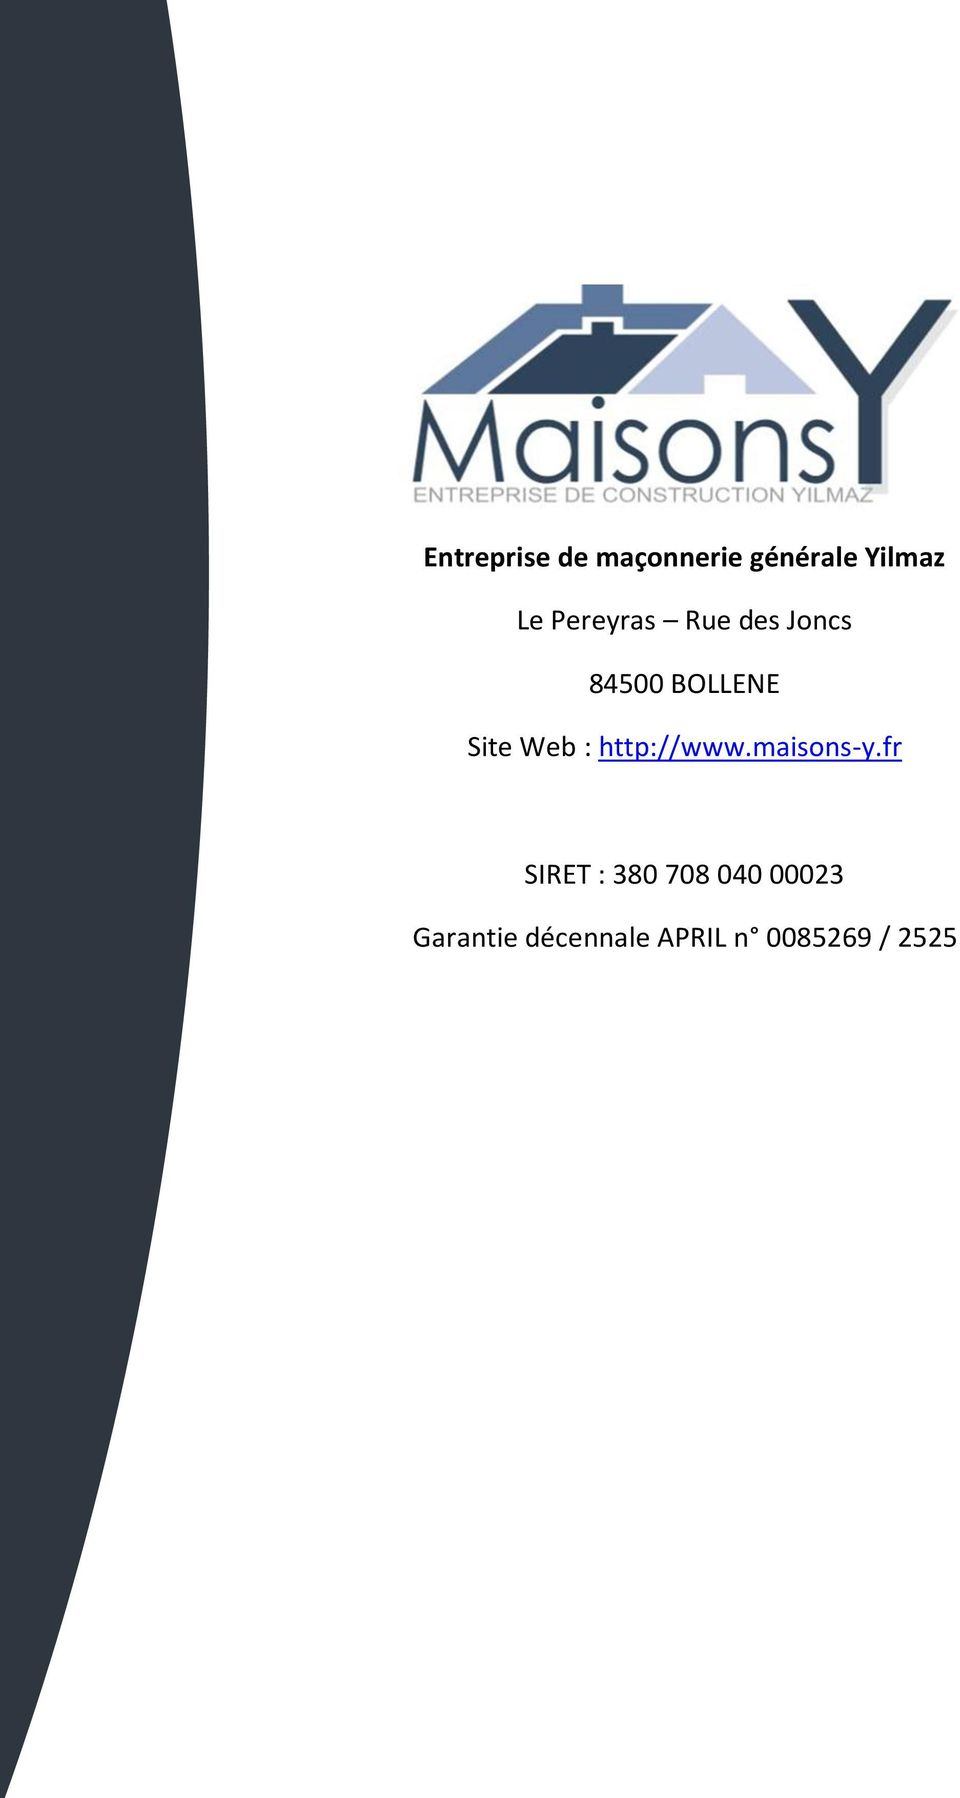 : http://www.maisons-y.